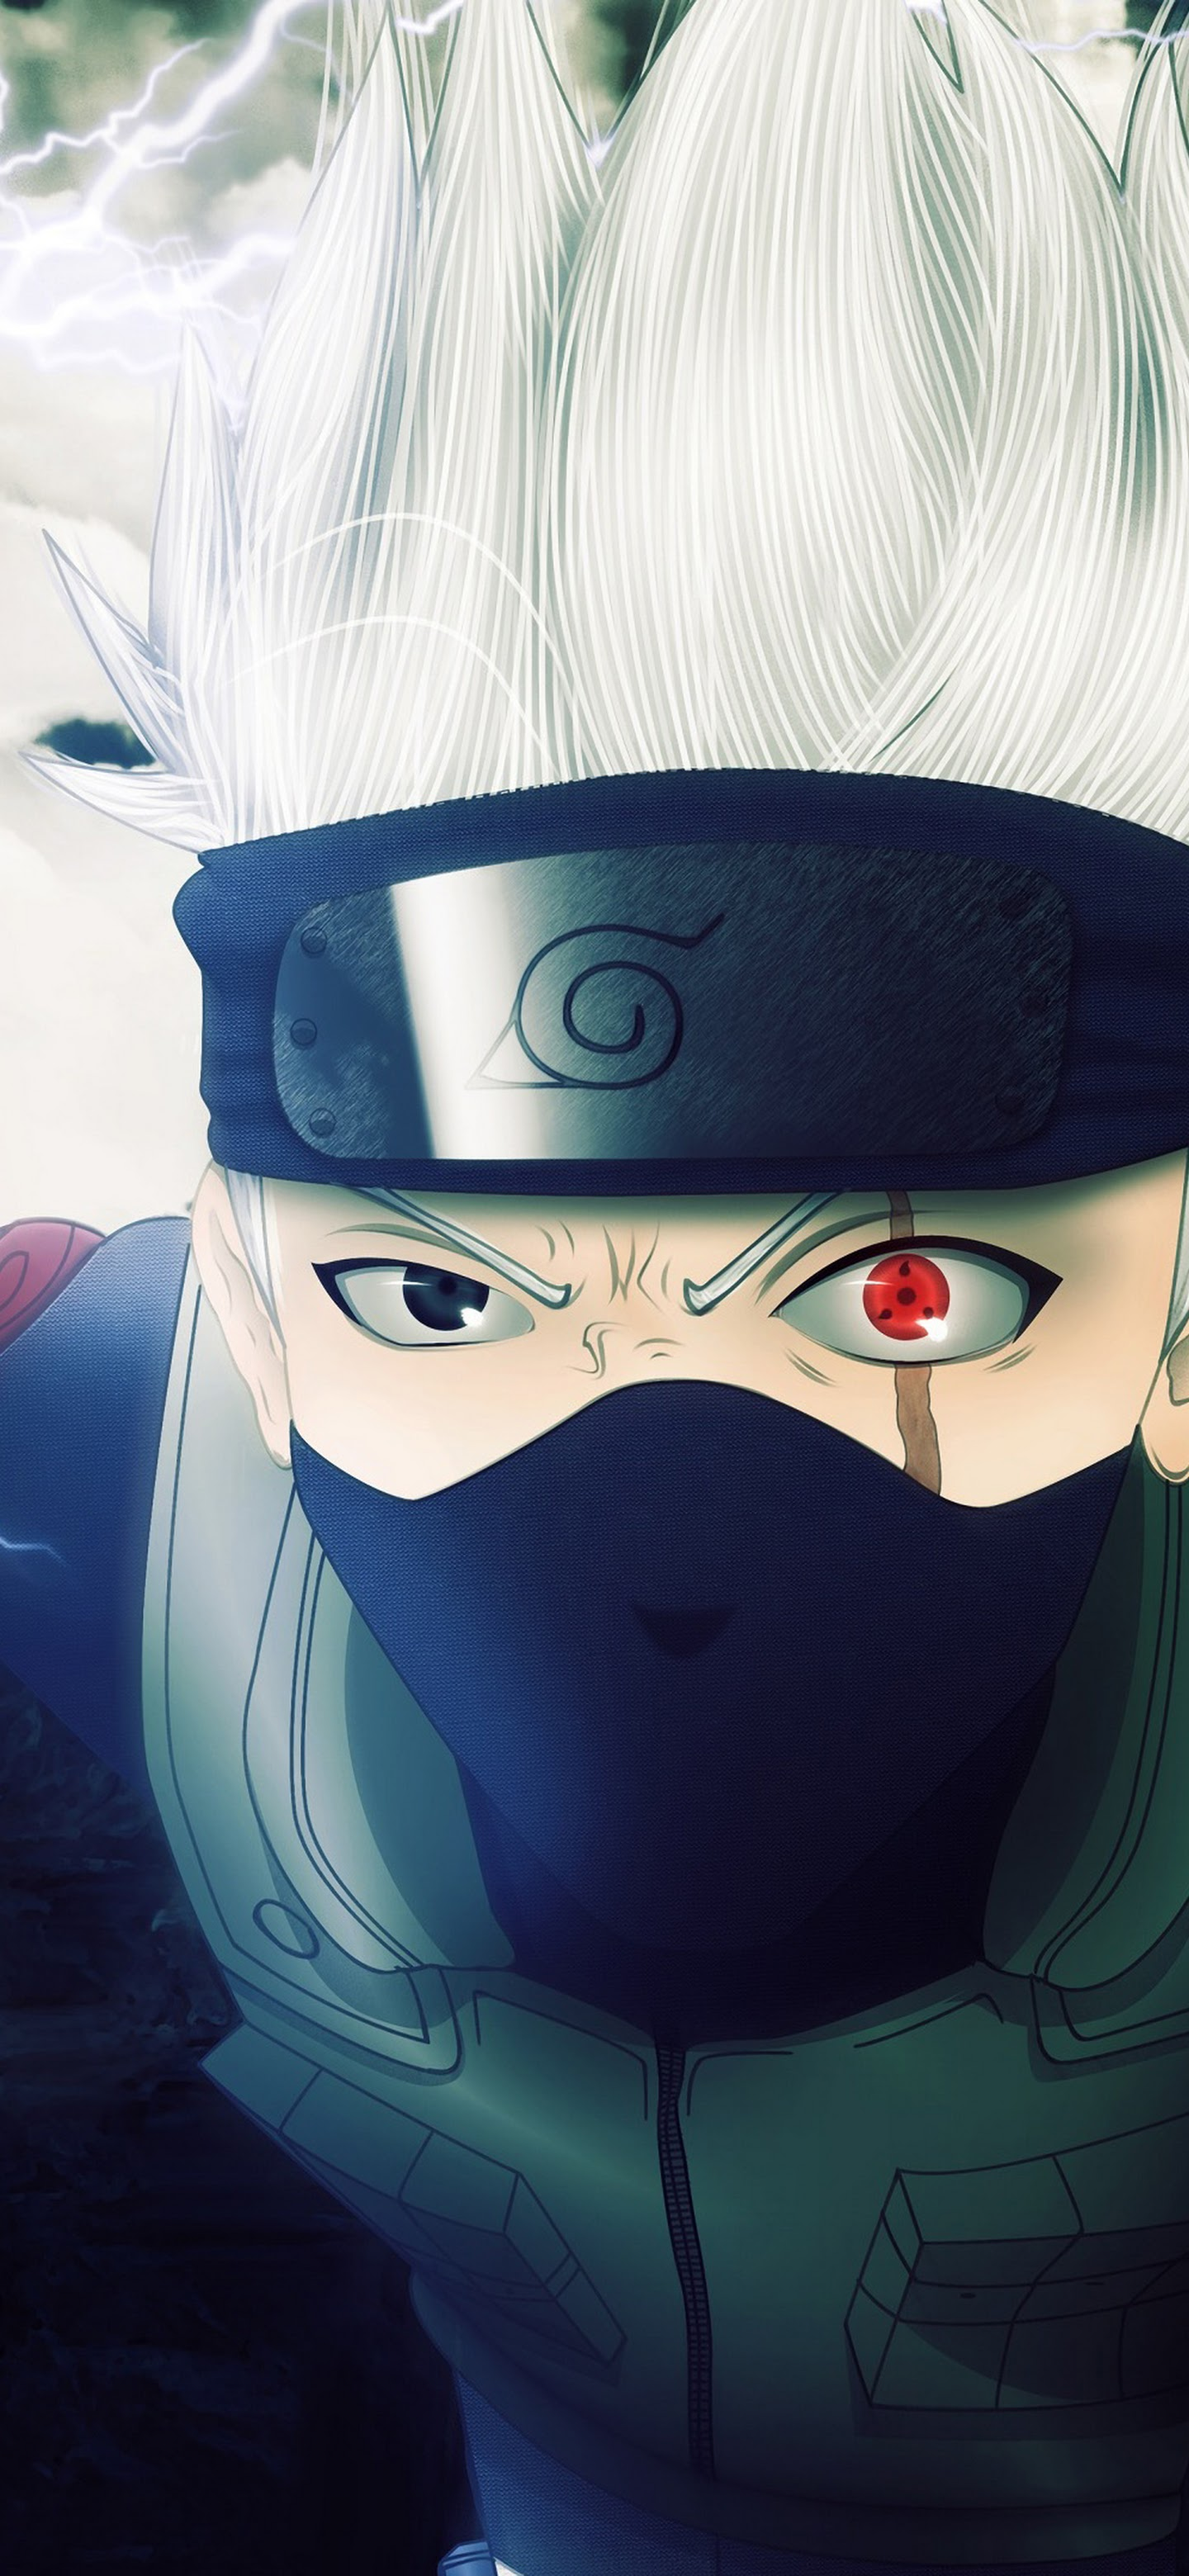 123 1234358 kakashi hatake sharingan 4k naruto wallpaper iphone 11